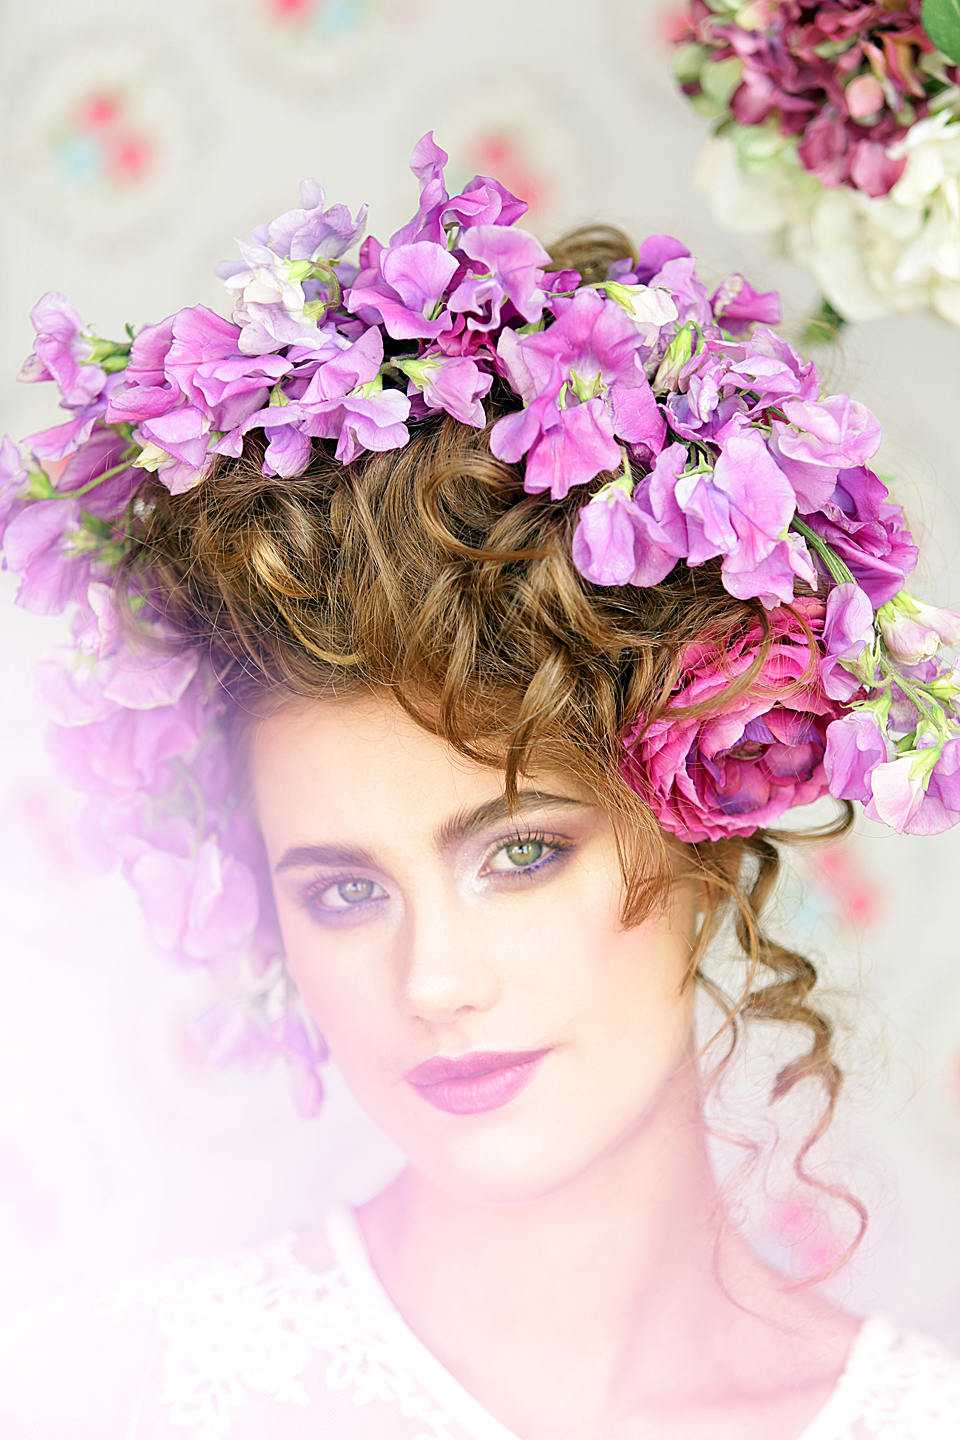 beauty-shoot-floral-fantasy-model-shoot-sam-scarborough-makeup-estilo-photography-johannesburg-photographers__ (2).jpg